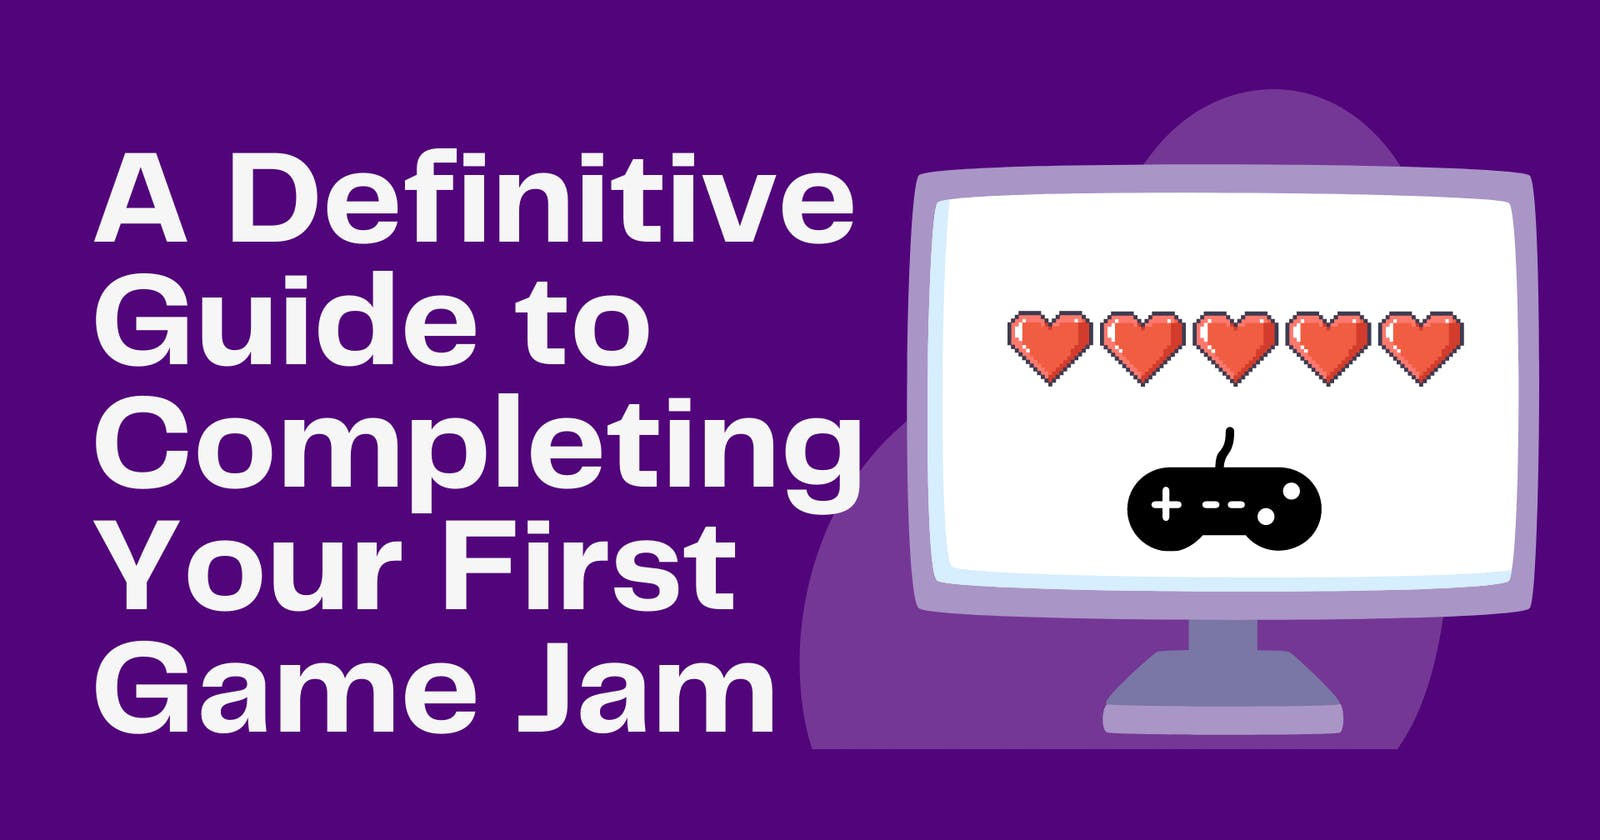 A Definitive Guide to Completing Your First Game Jam